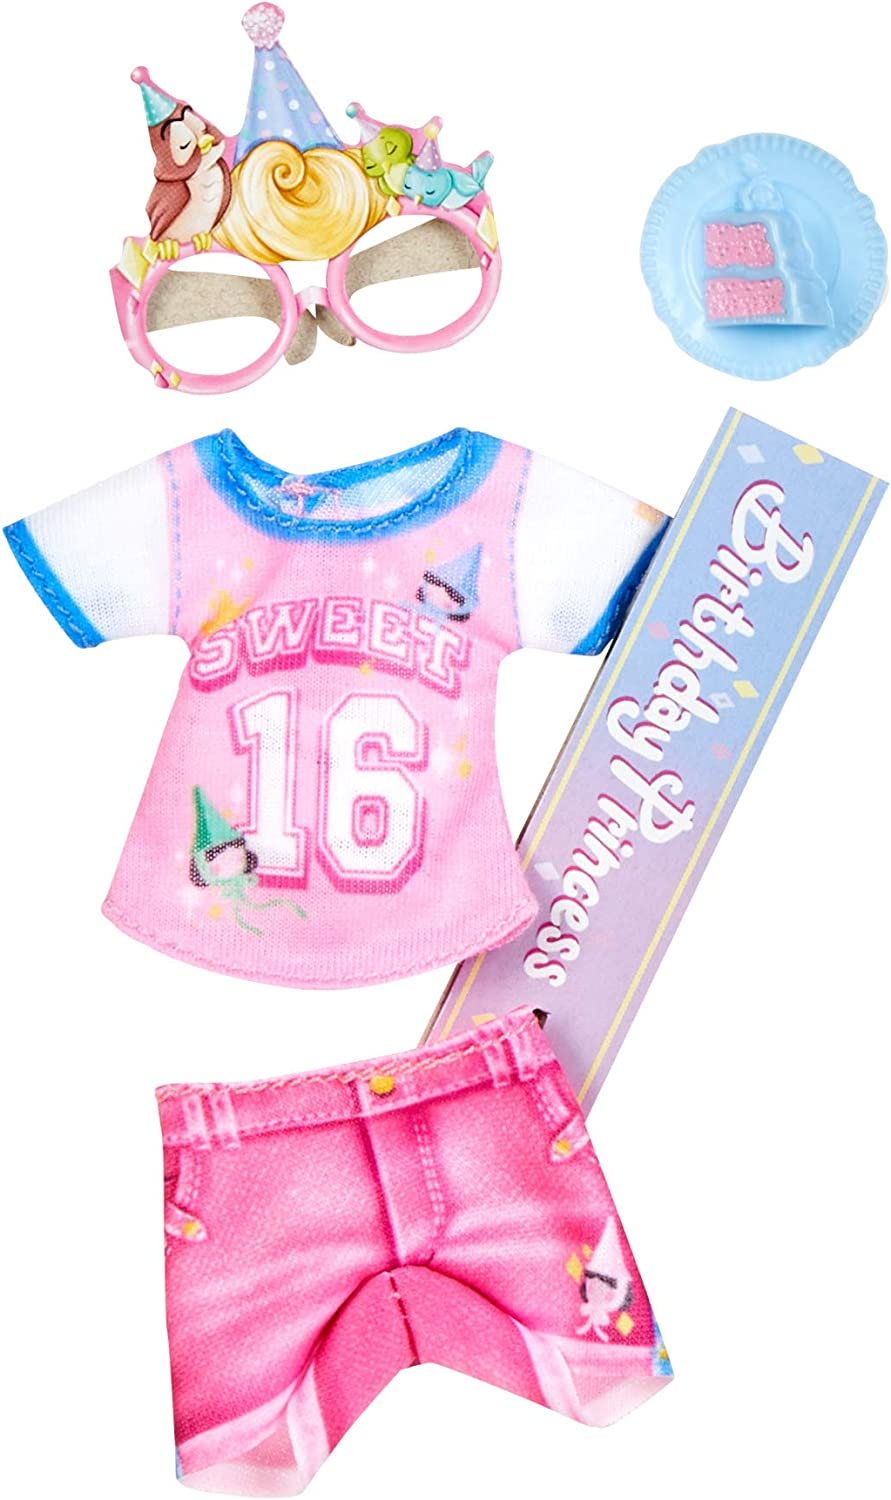 Hasbro Disney Princess Comfy Squad Fashion Pack for Aurora Doll Doll Sold Separately Clothes for Disney Fashion Doll Toy